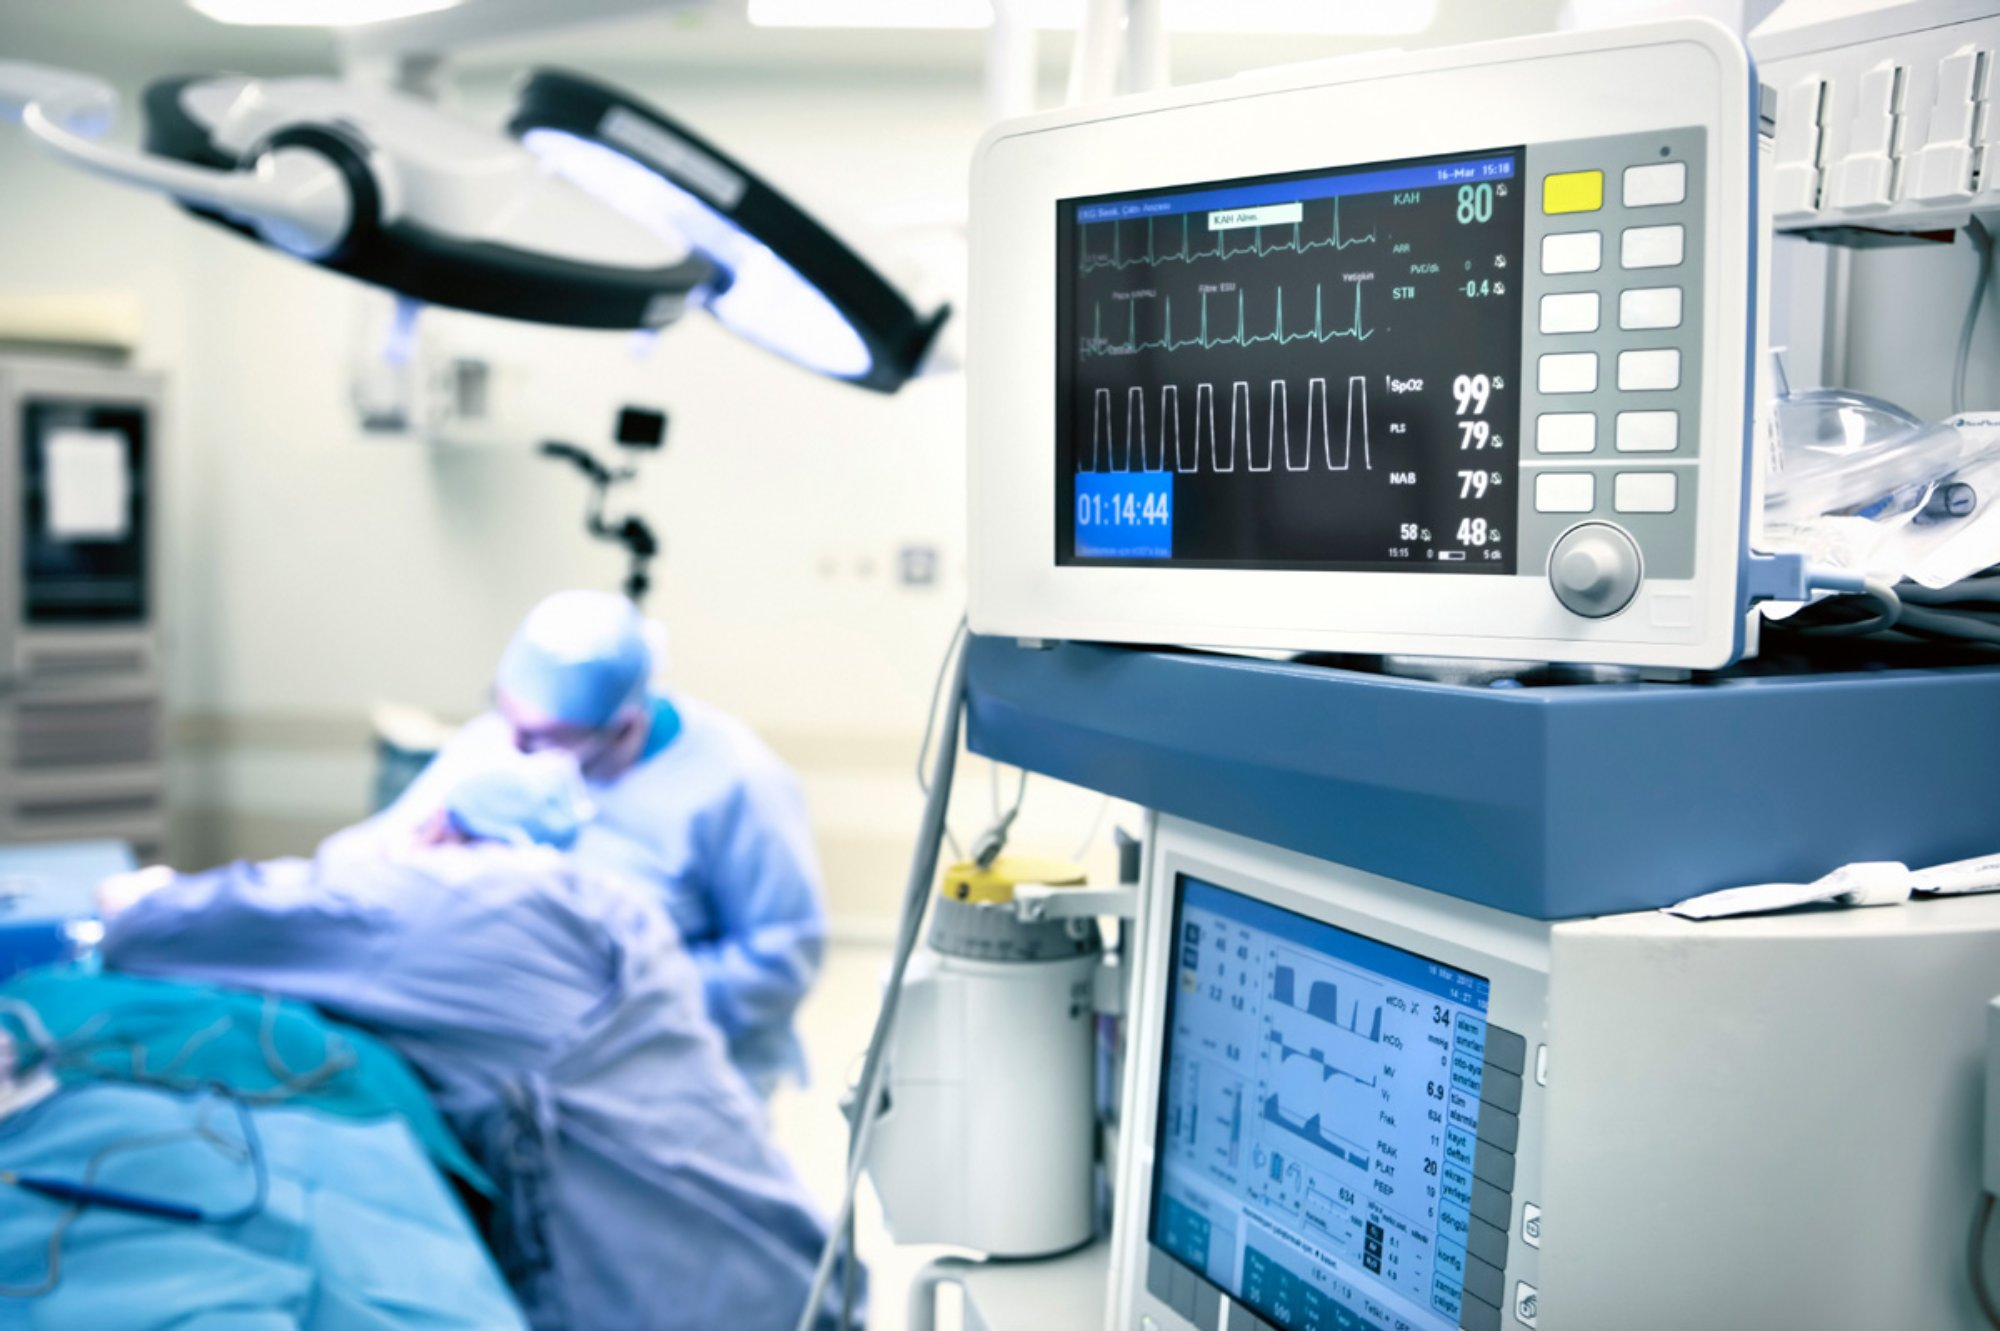 The Disturbing Cyber Threat Targeting Medical Devices